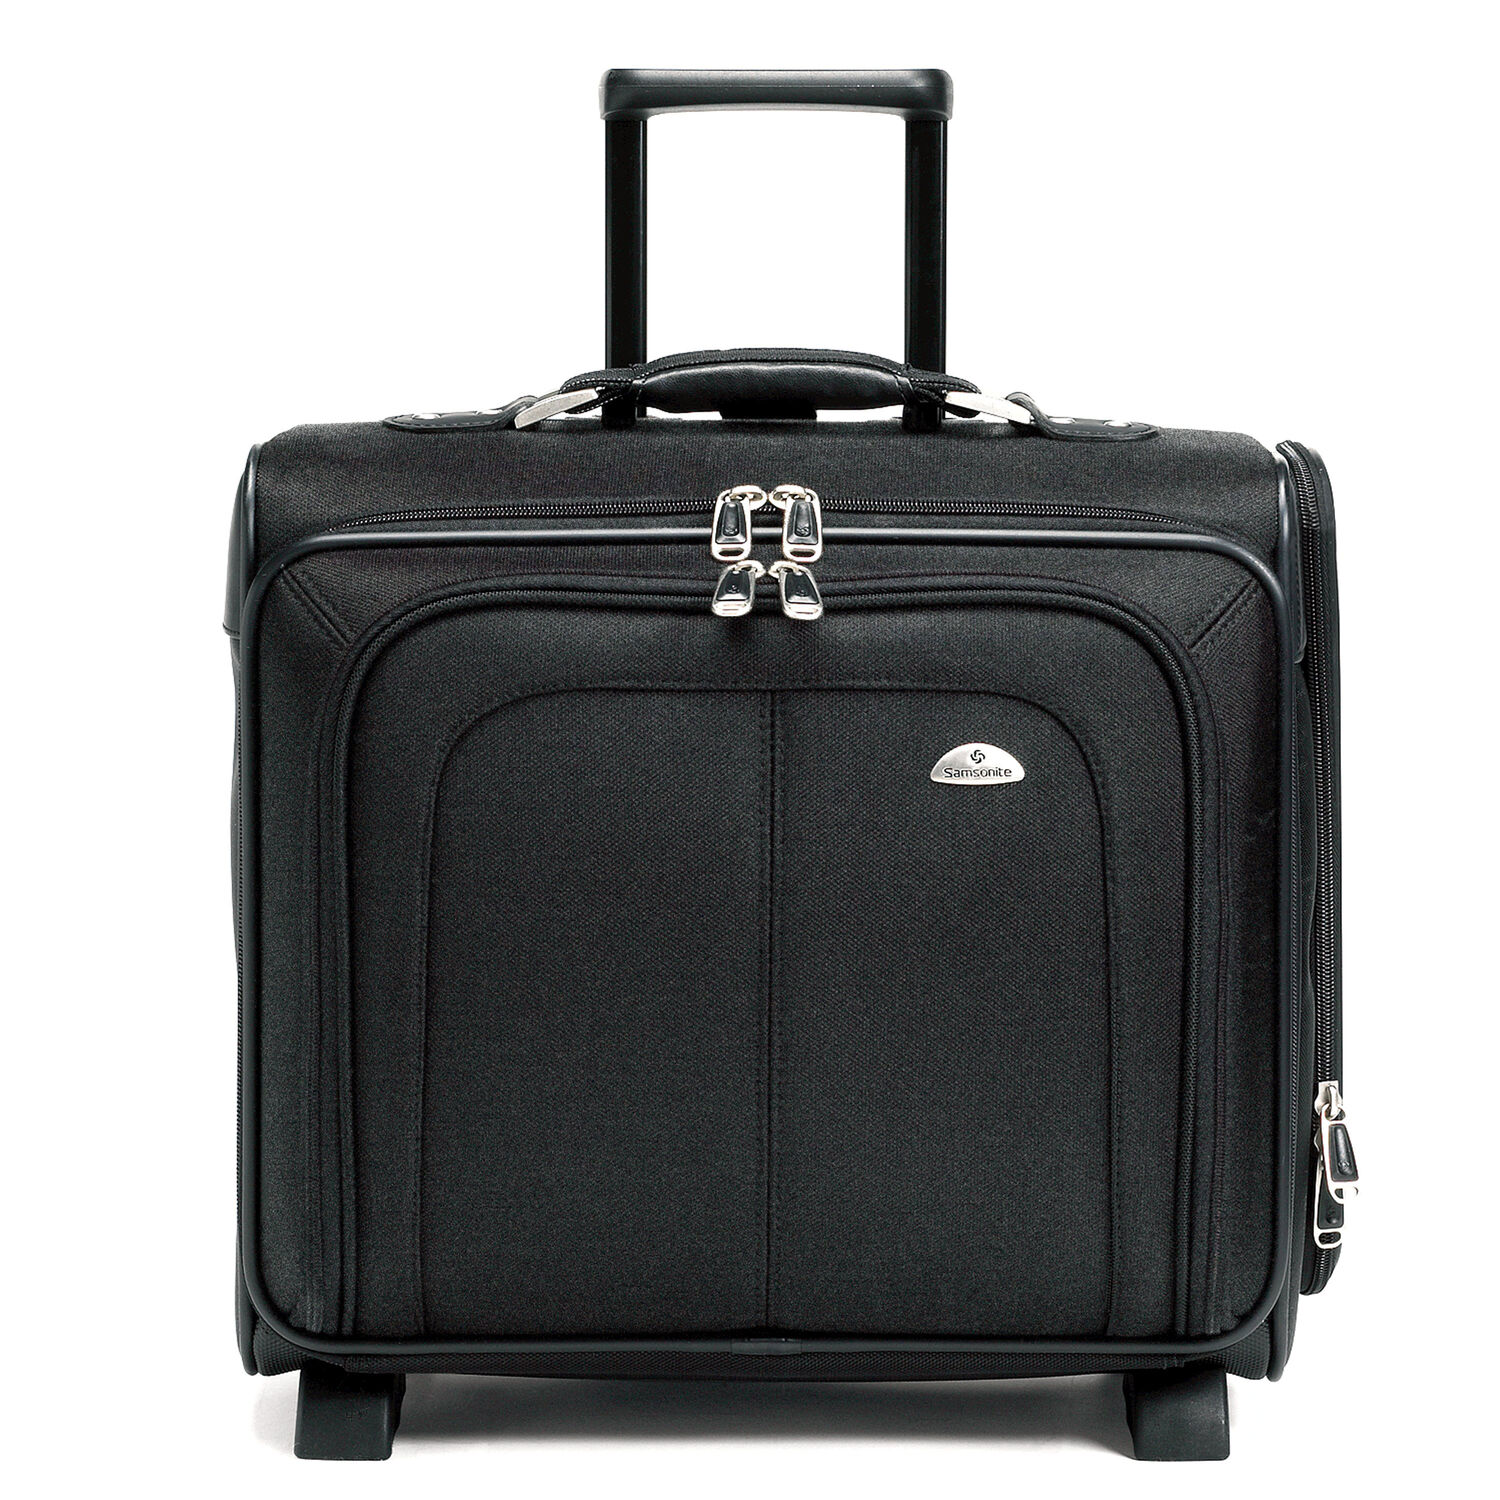 Samsonite Business Sideloader Mobile Office